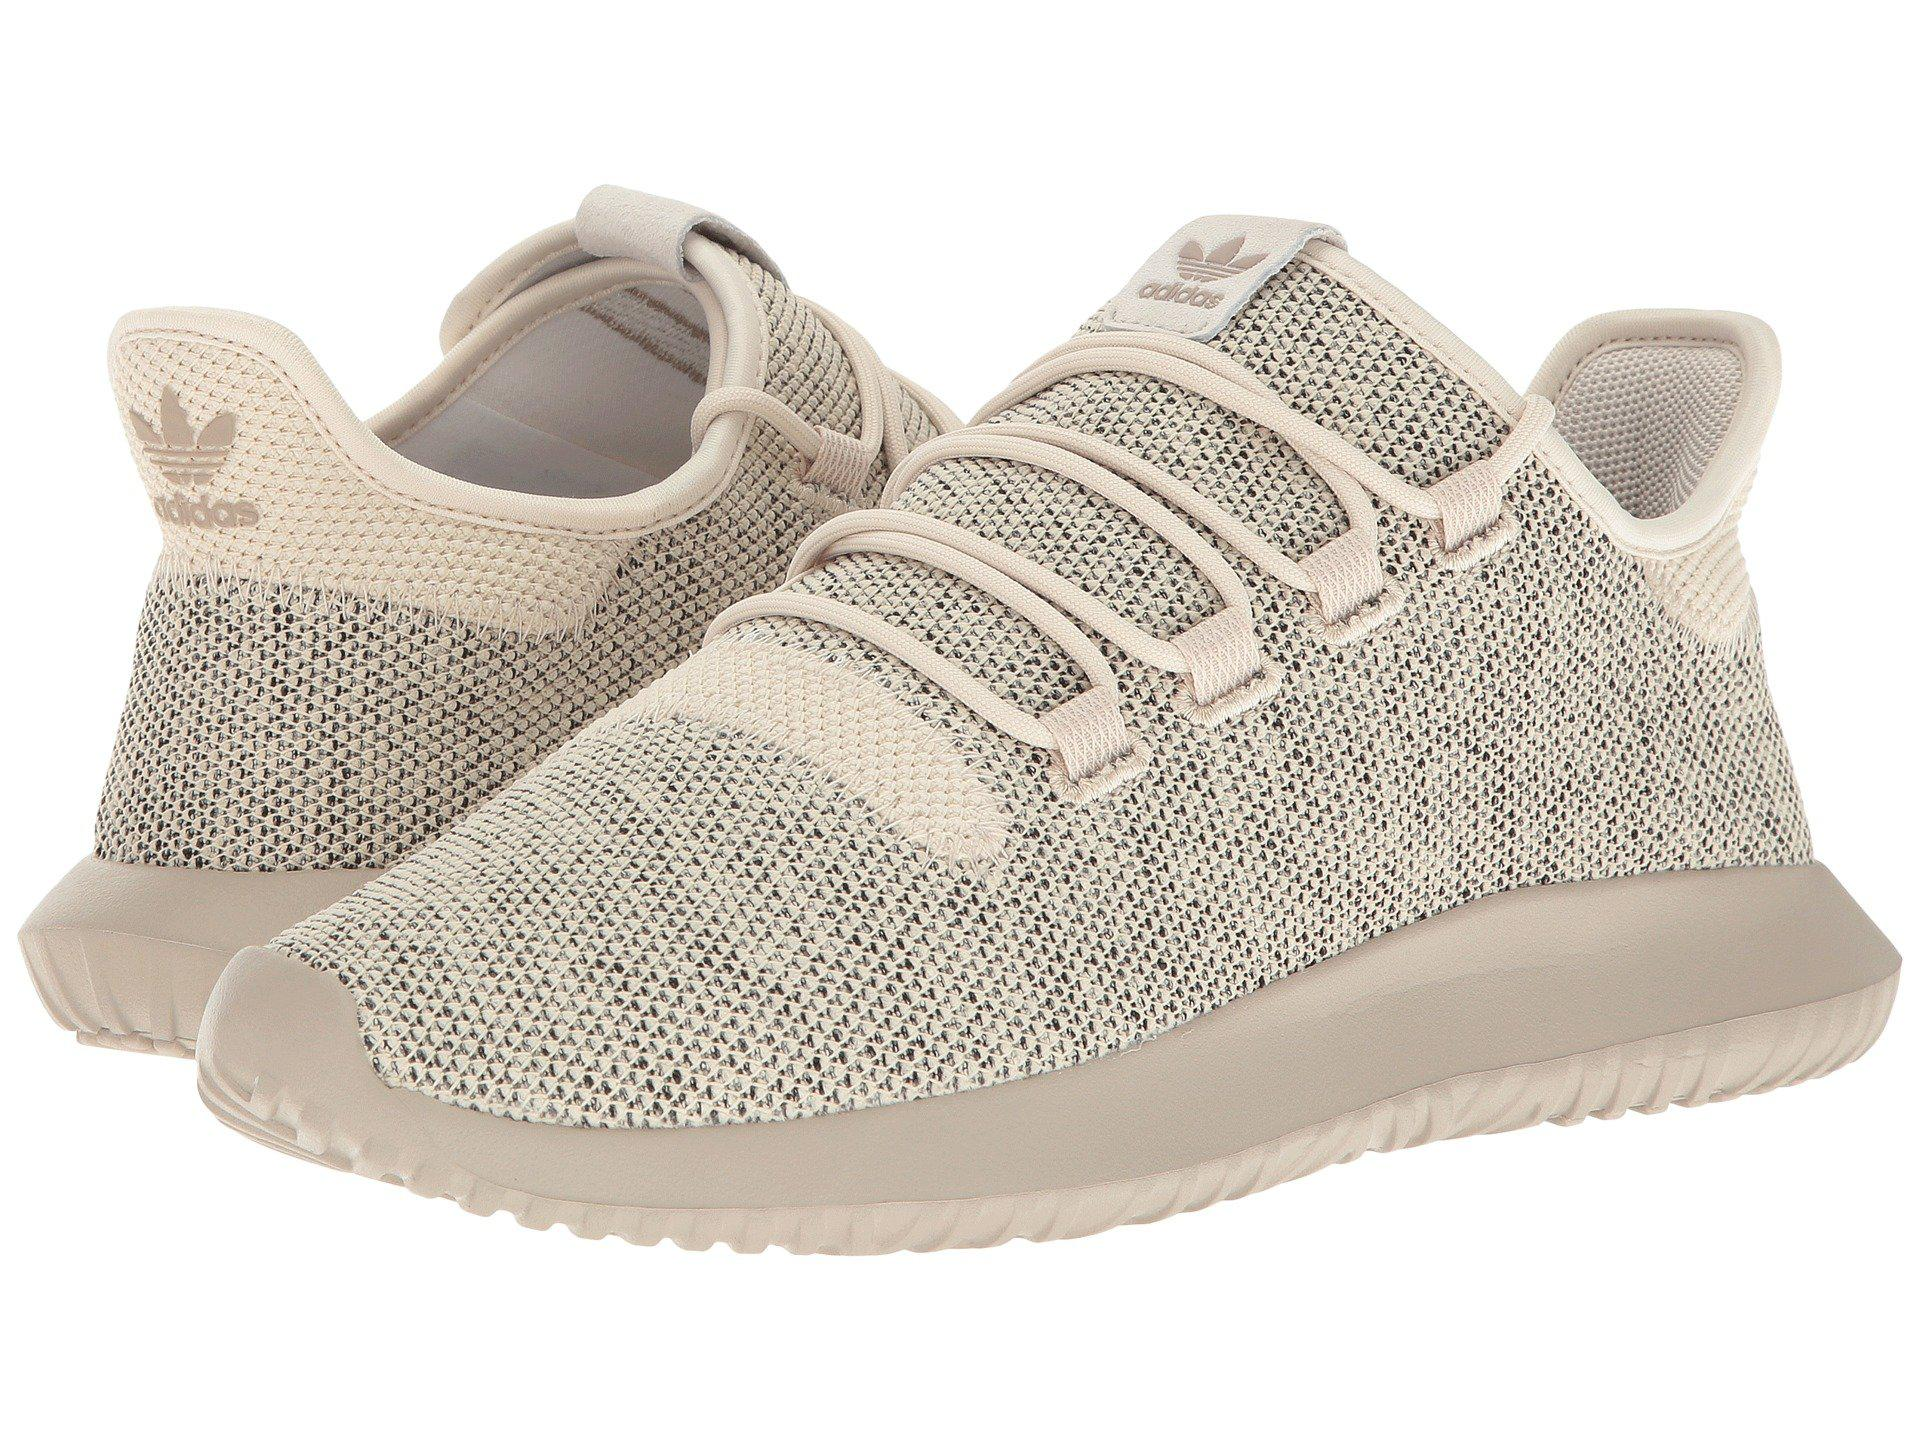 4720f46e7e07f1 Lyst - adidas Originals Tubular Shadow Knit in Brown for Men - Save 4%